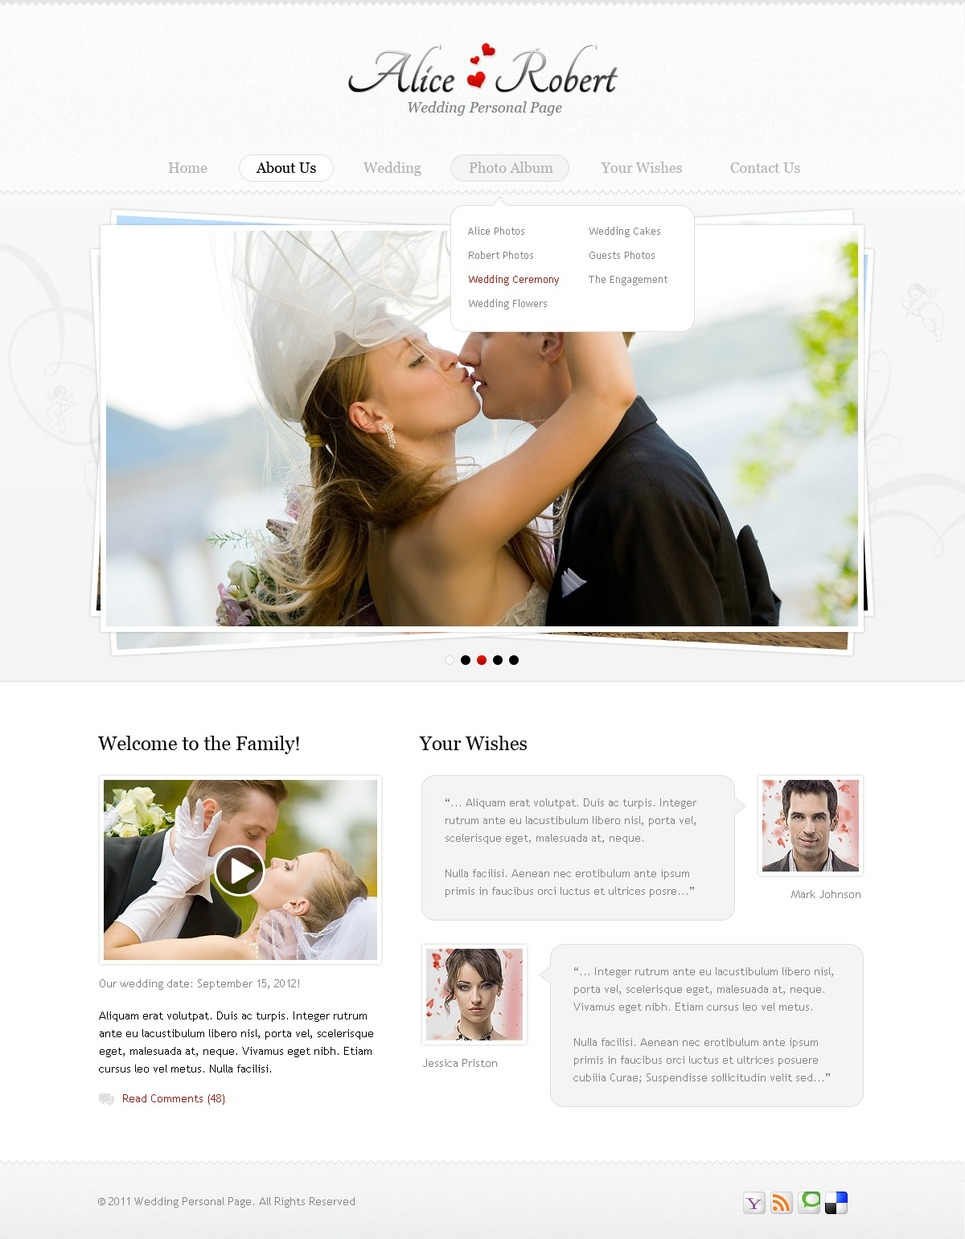 Wedding Website Template New Screenshots BIG